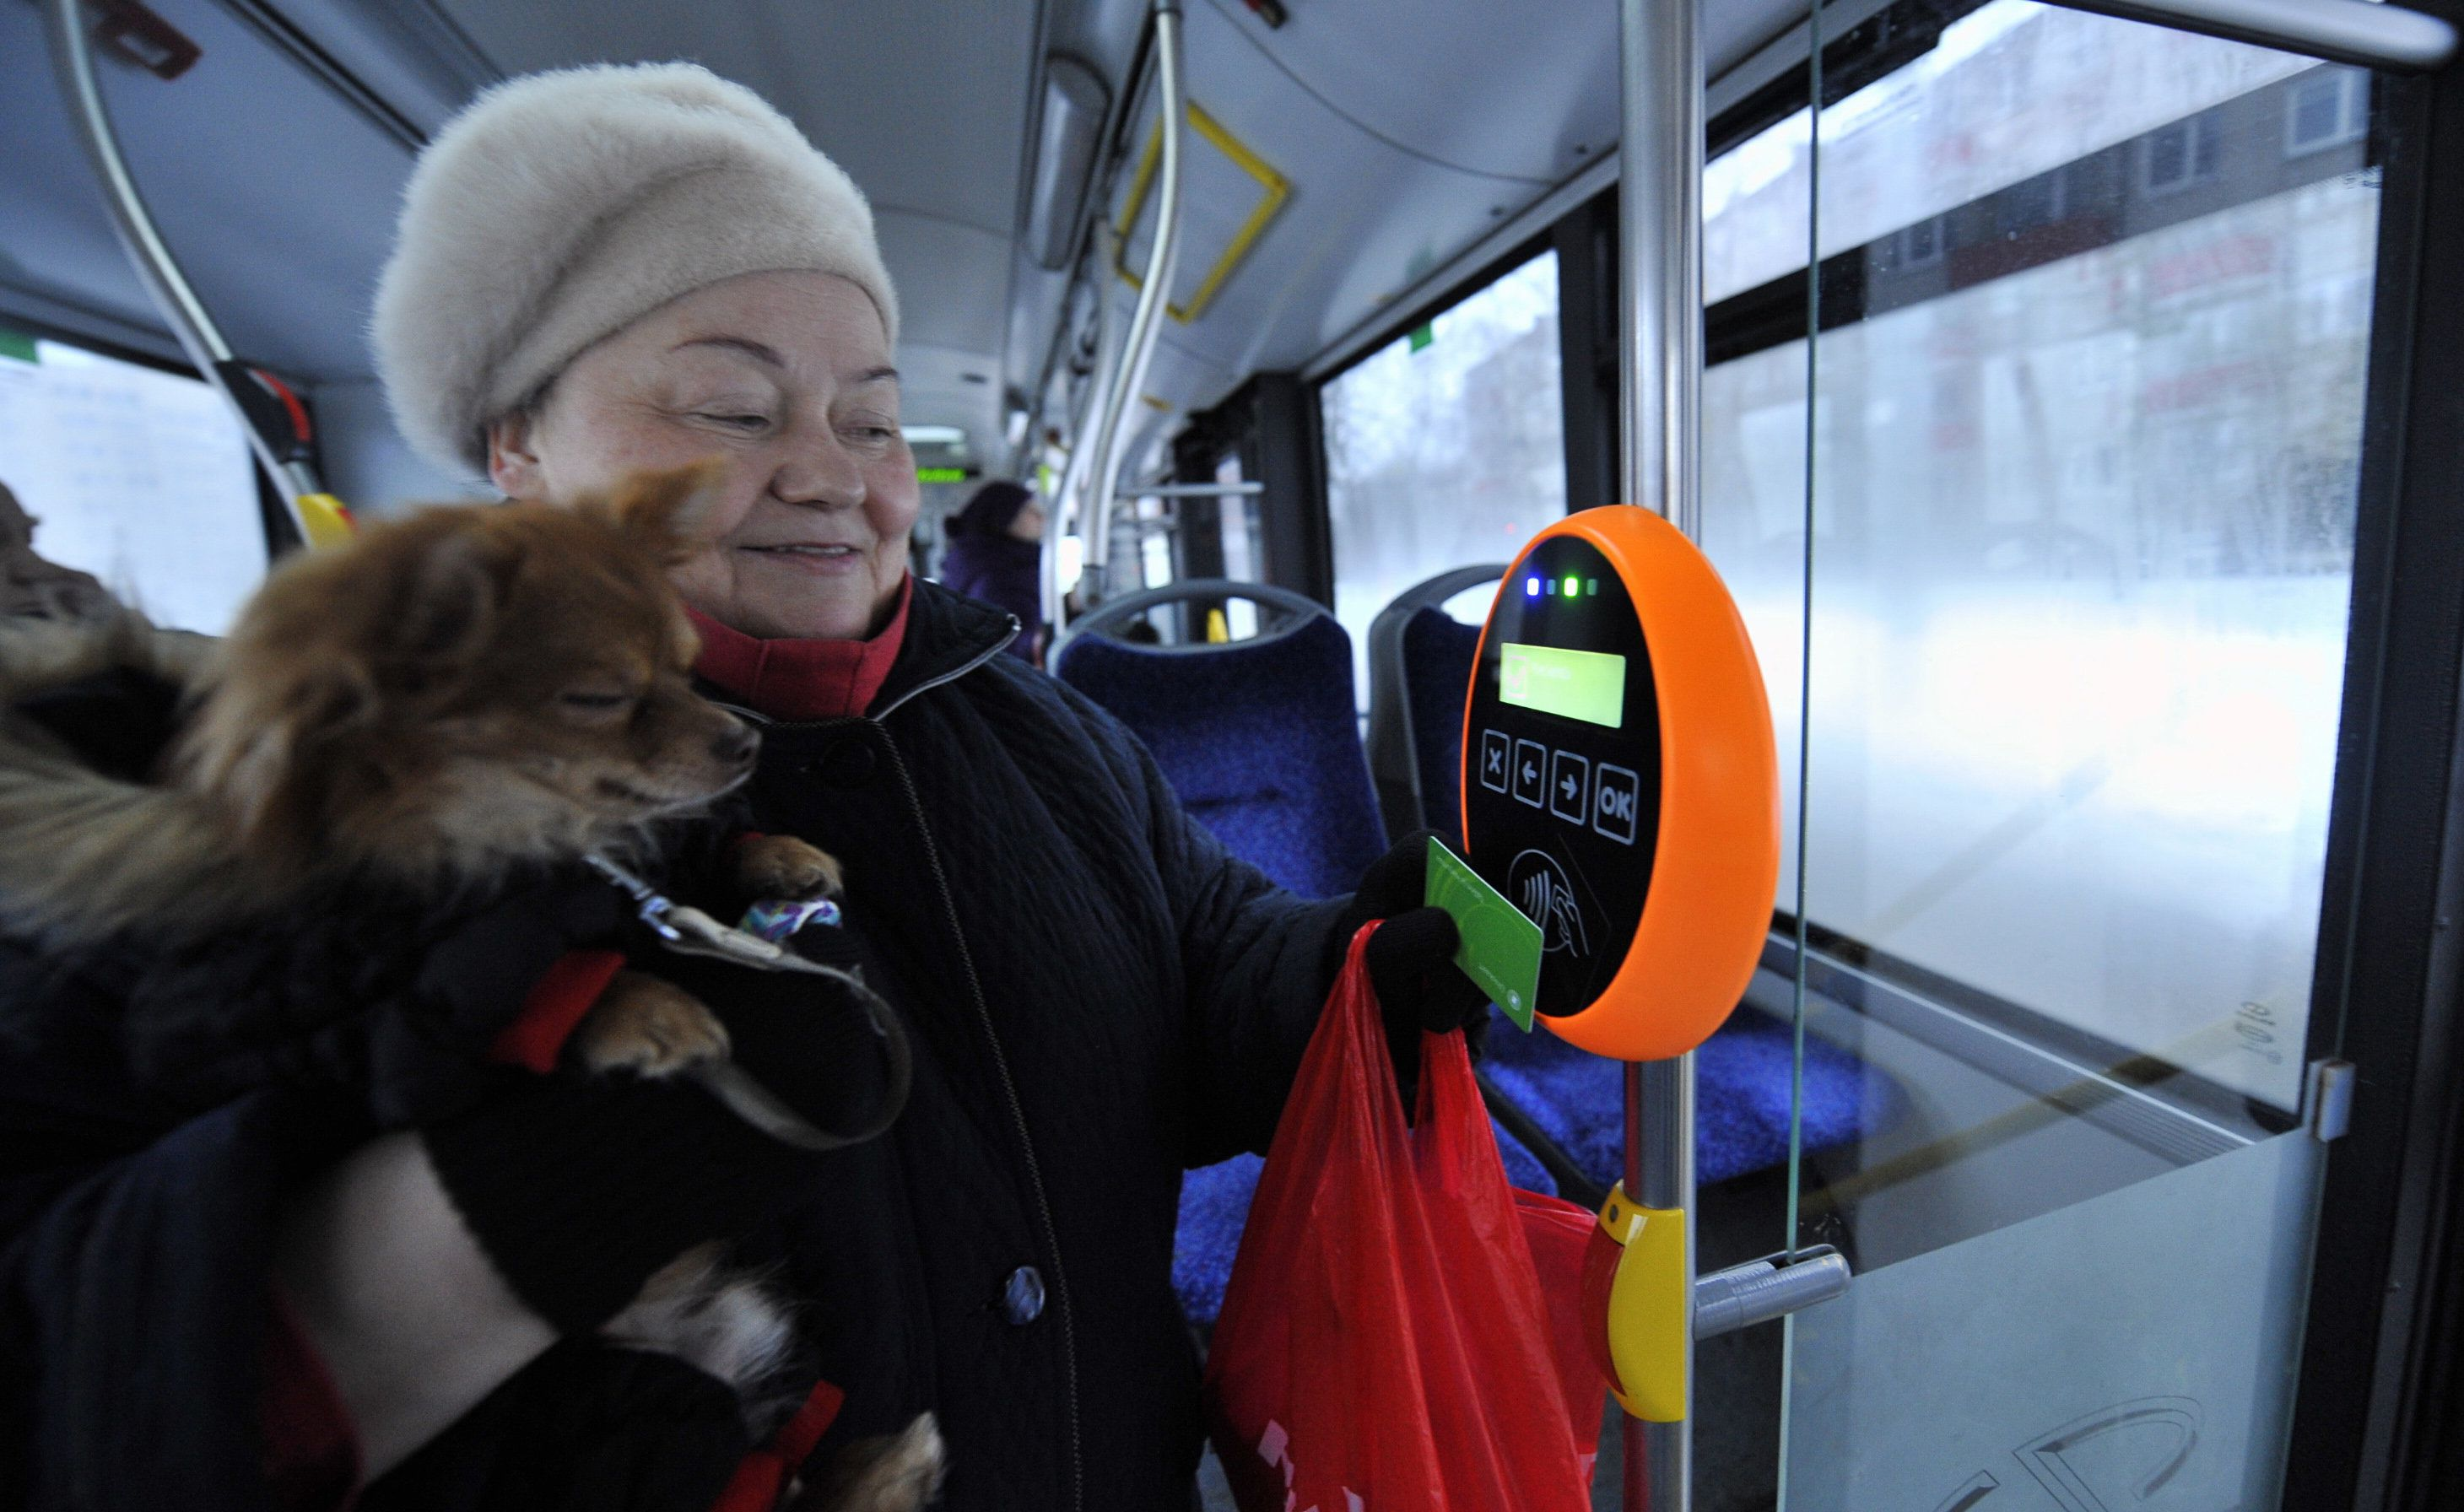 A woman holds her dog while she holds a green special card to a reading device in a bus in Tallinn, on January 9, 2013. From January 1, 2013,  residents of the Estonian capital can use public transports in Tallinn for free after purchasing a special card for 2 euros. AFP PHOTO / RAIGO PAJULA        (Photo credit should read RAIGO PAJULA/AFP/Getty Images)